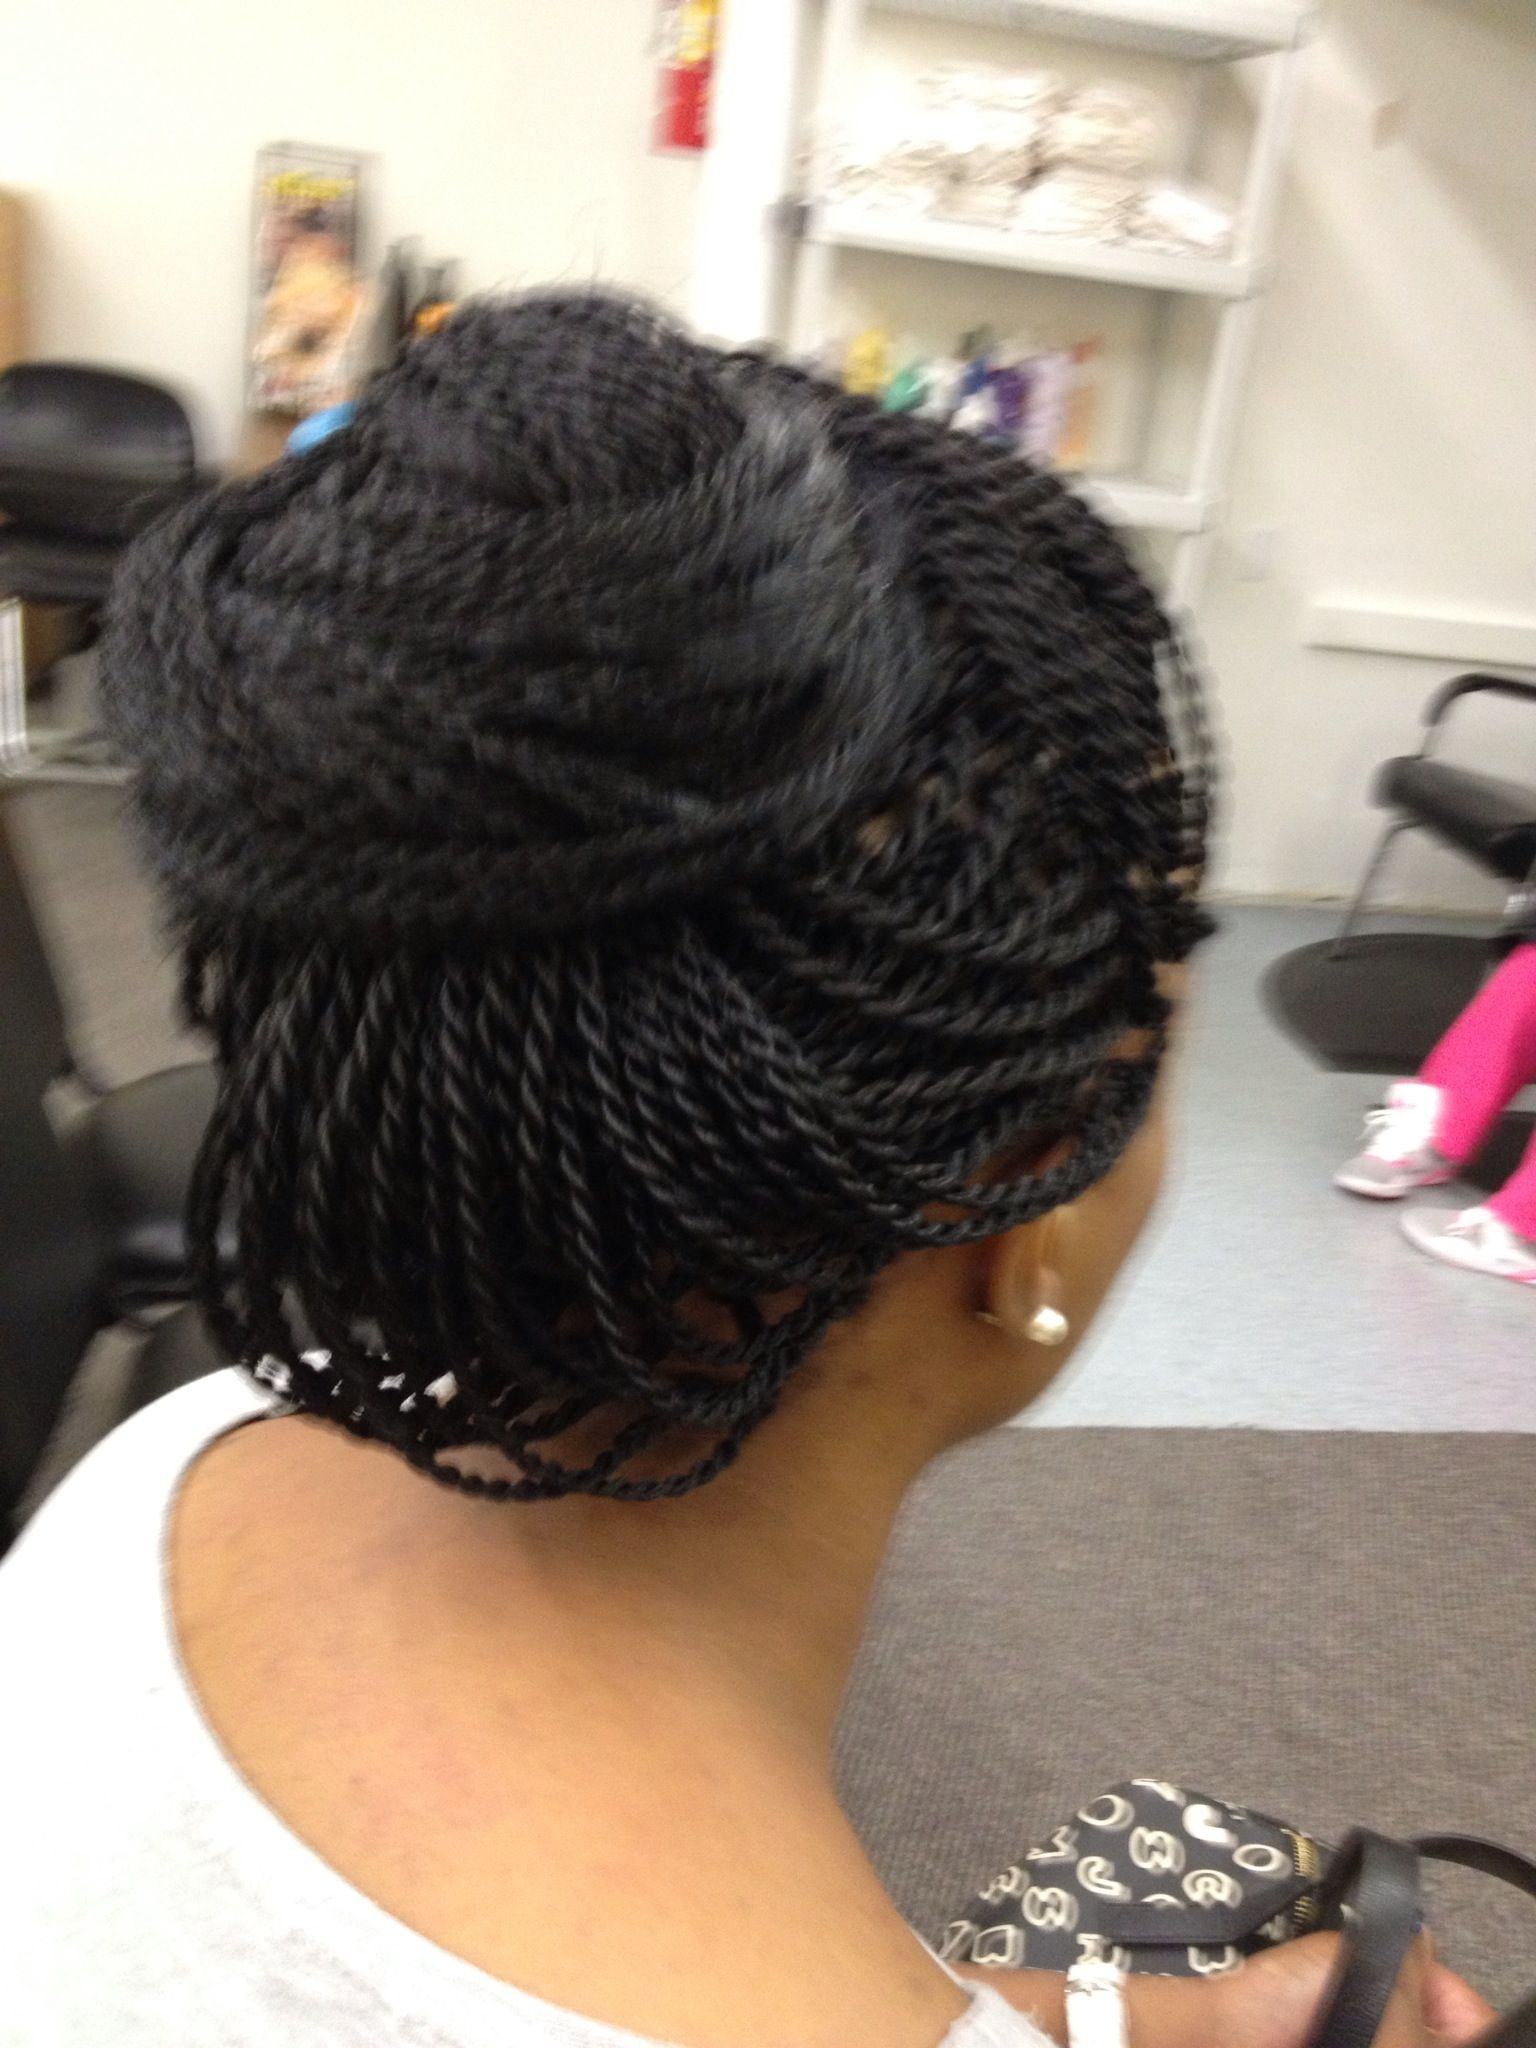 Original Protective Hairstyles About More Than Braids And Buns  Rolling Out